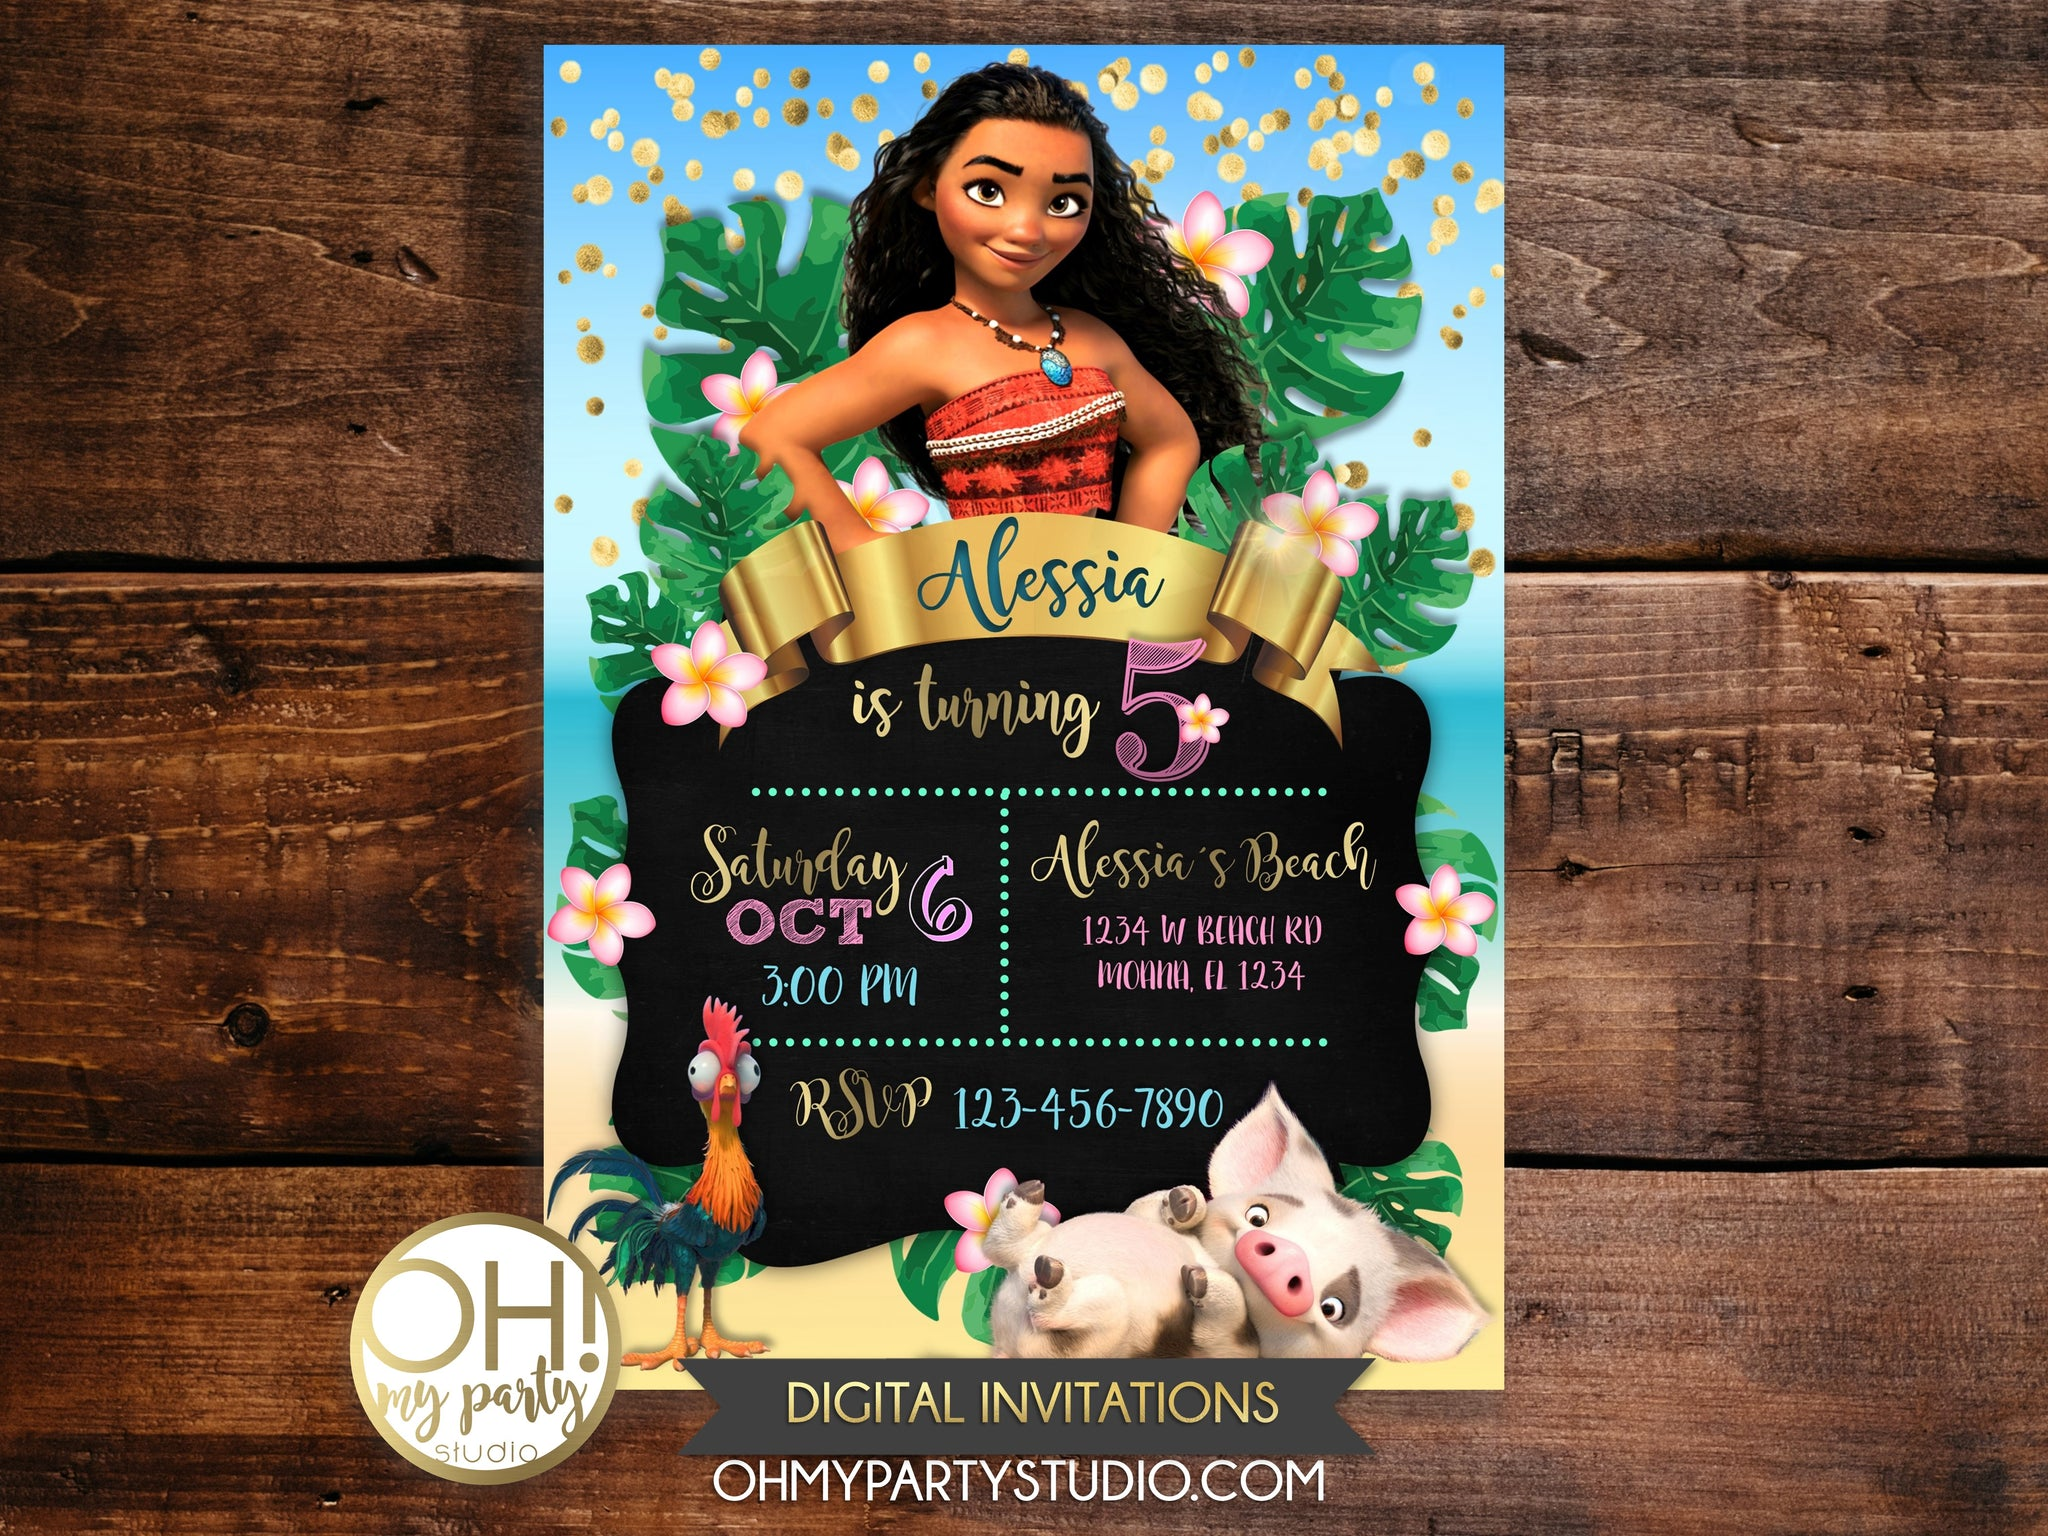 BABY MOANA BIRTHDAY PARTY INVITATION, BABY MOANA INVITATION, BABY MOANA INVITATIONS, MOANA POOL PARTY, MOANA POOL PARTY INVITATION, MOANA POOL PARTY BIRTHDAY INVITATION, MOANA POOL PARTY BIRTHDAY, MOANA POOL PARTY IDEAS, MOANA PARTY IDEAS, MOANA SUMMER INVITATION, MOANA BIRTHDAY INVITATION, MOANA INVITE, MOANA INVITATIONS, MOANA POOL PARTY, MOANA PARTY PRINTABLES, MOANA DIGITAL INVITATION, MOANA PARTY SUPPLIES, MOANA INVITE, BABY MOANA BIRTHDAY PARTY, BABY MOANA INVITE